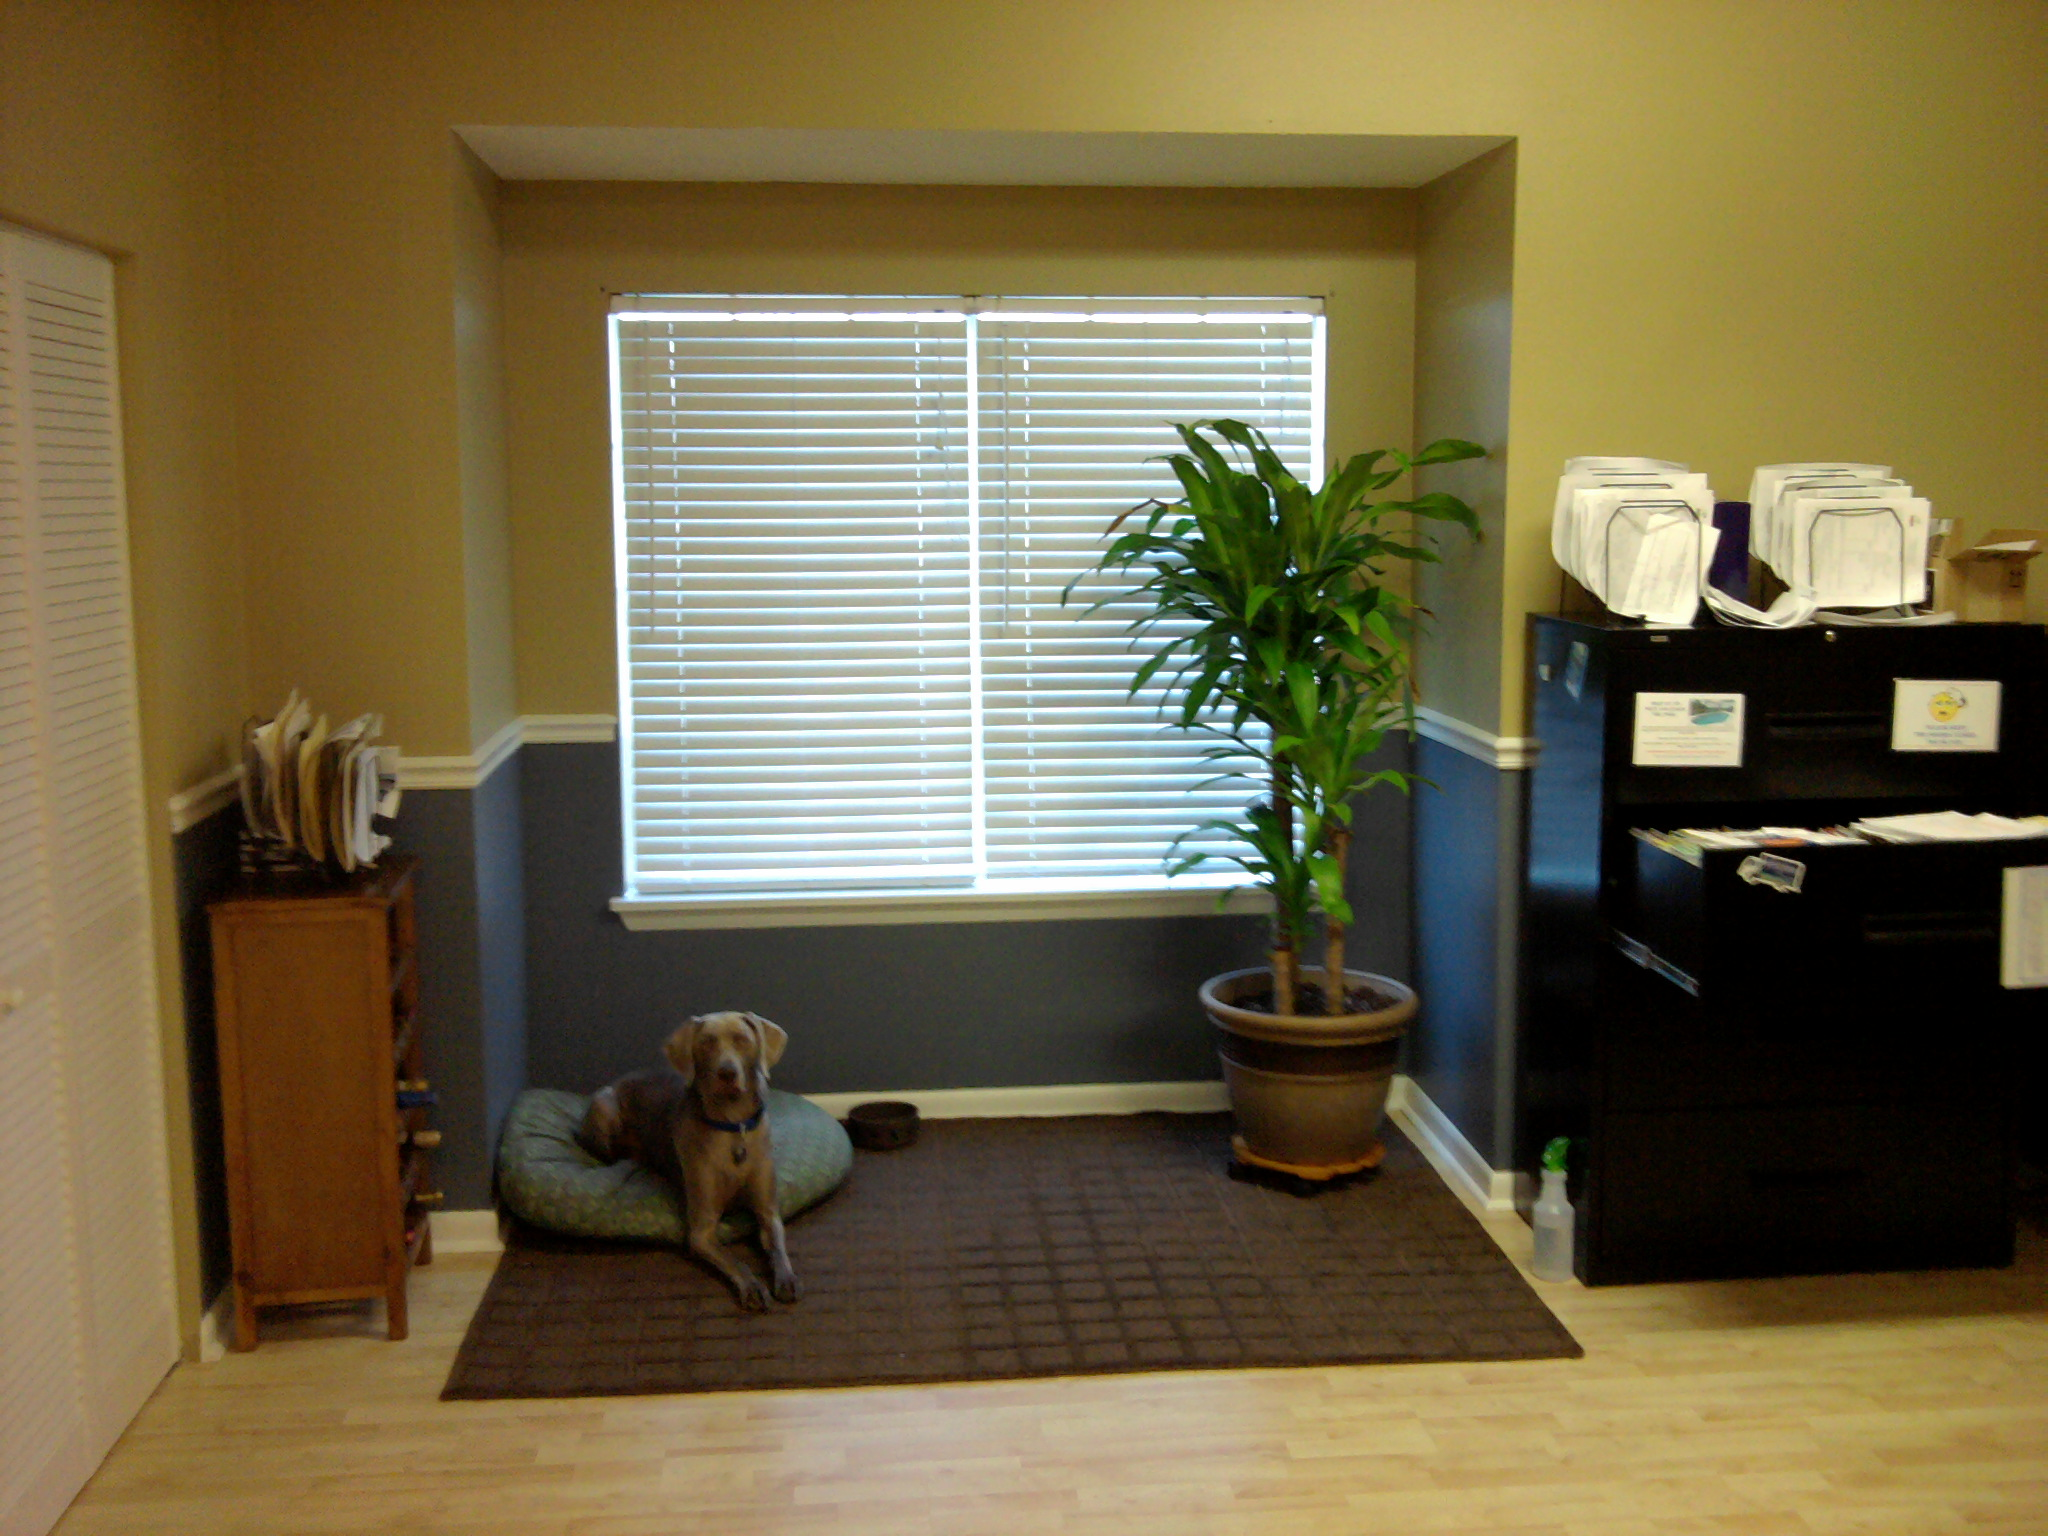 Trim & Painted Office Space